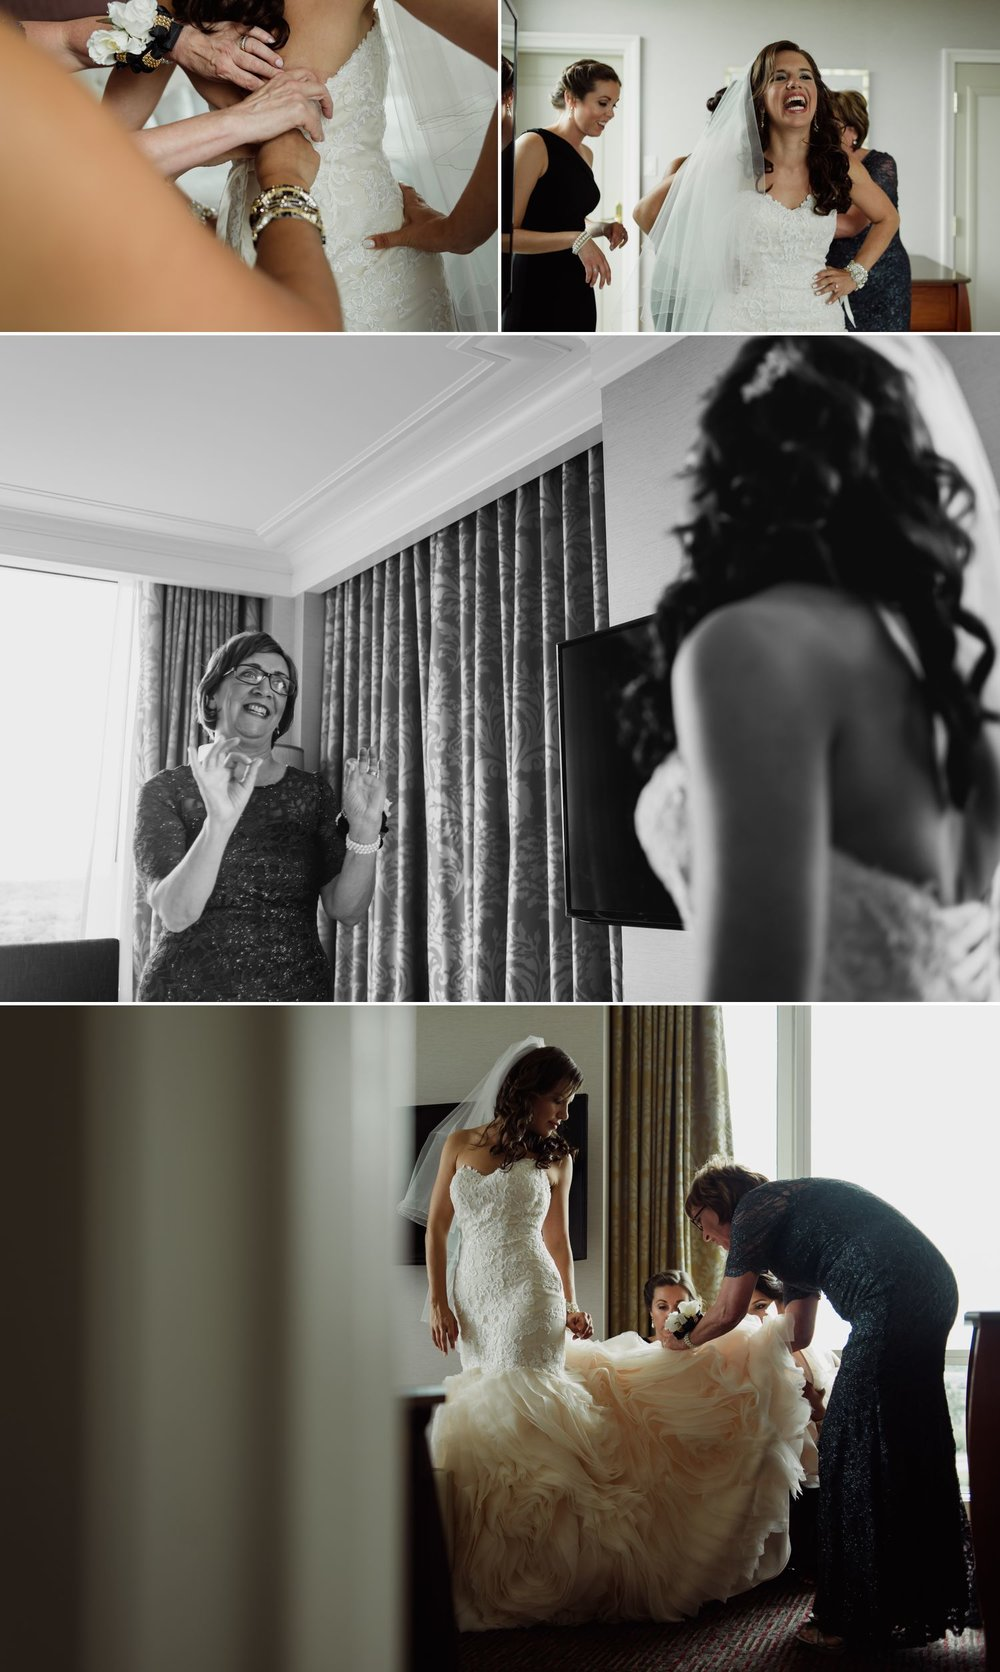 Bride getting ready with her family and bridesmaids